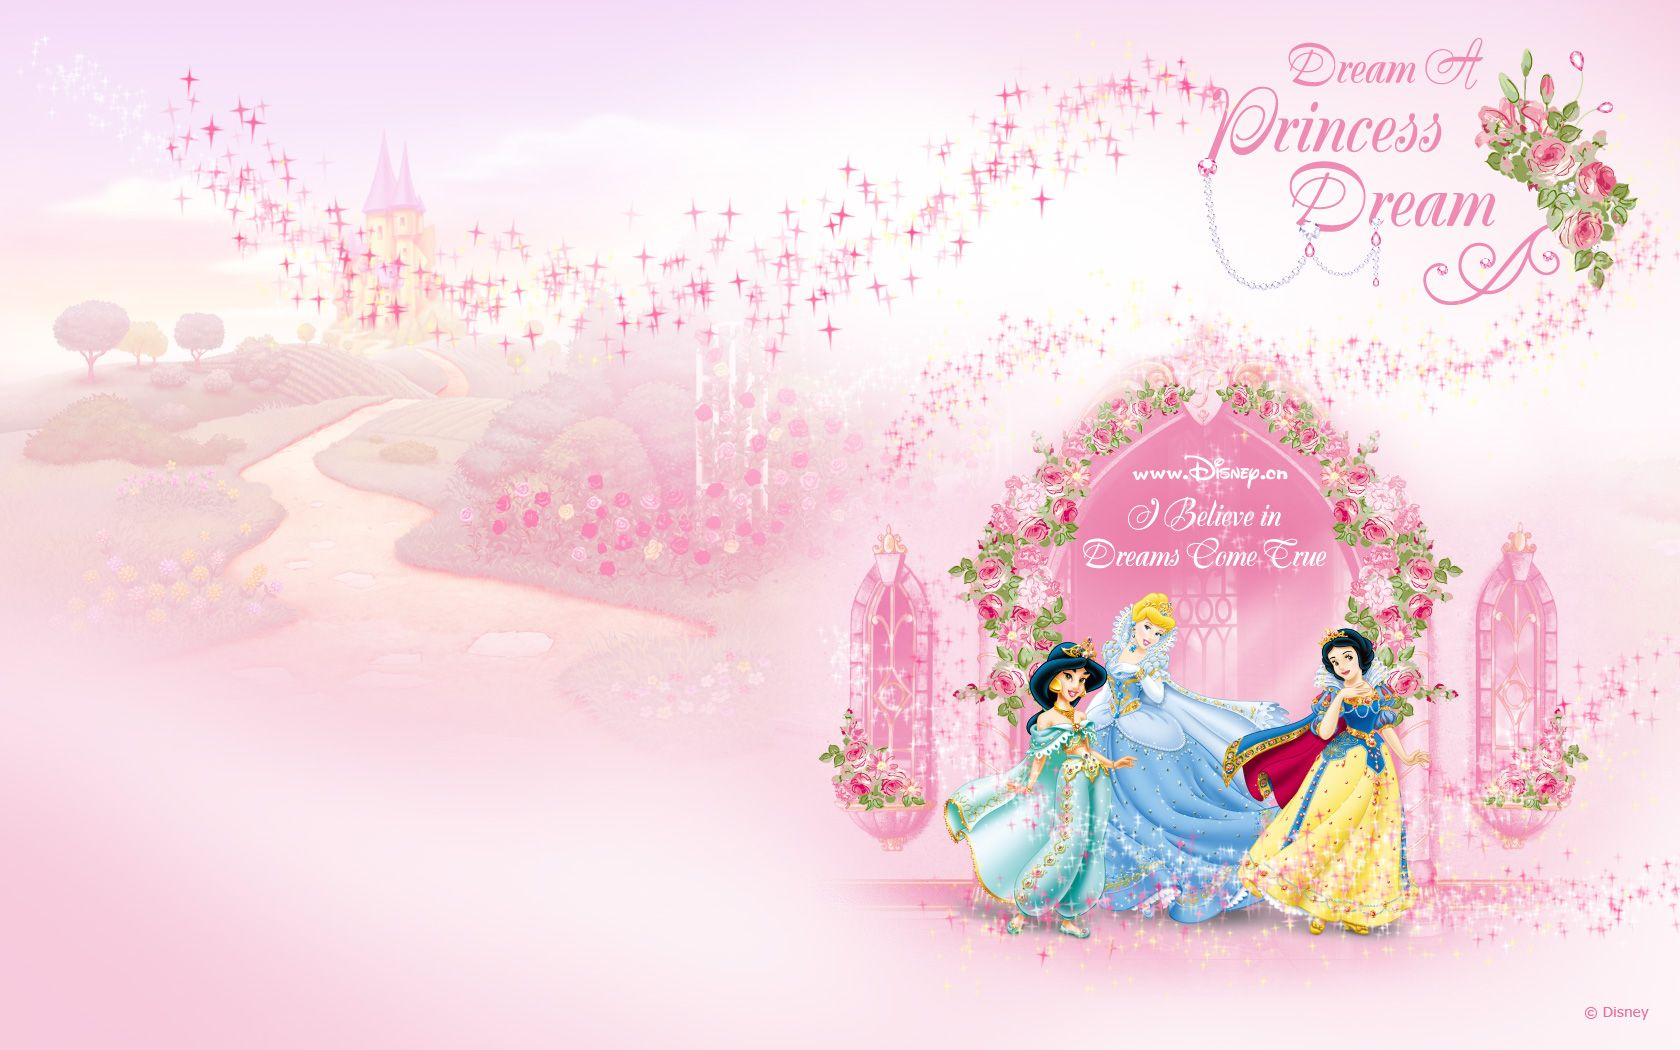 Princess Aurora Background Design Wallpapers Ideas Disney